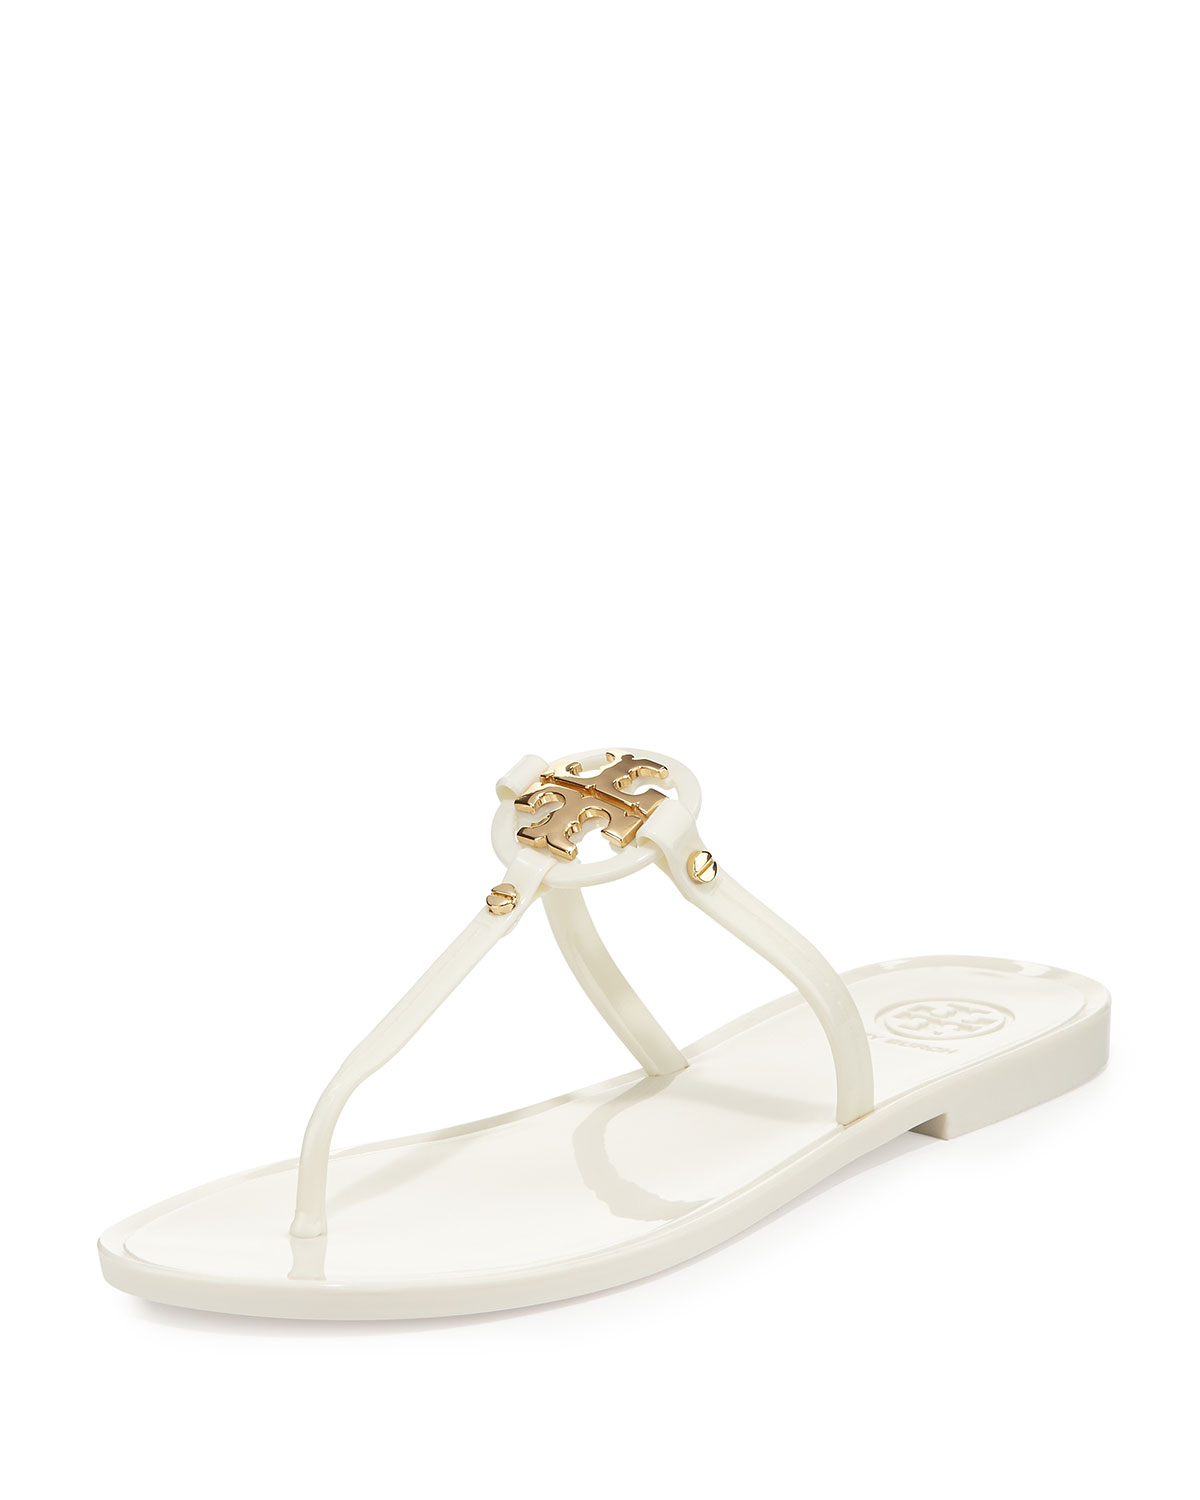 917c7821c2c018 Tory Burch Mini Miller Jelly Thong Sandal